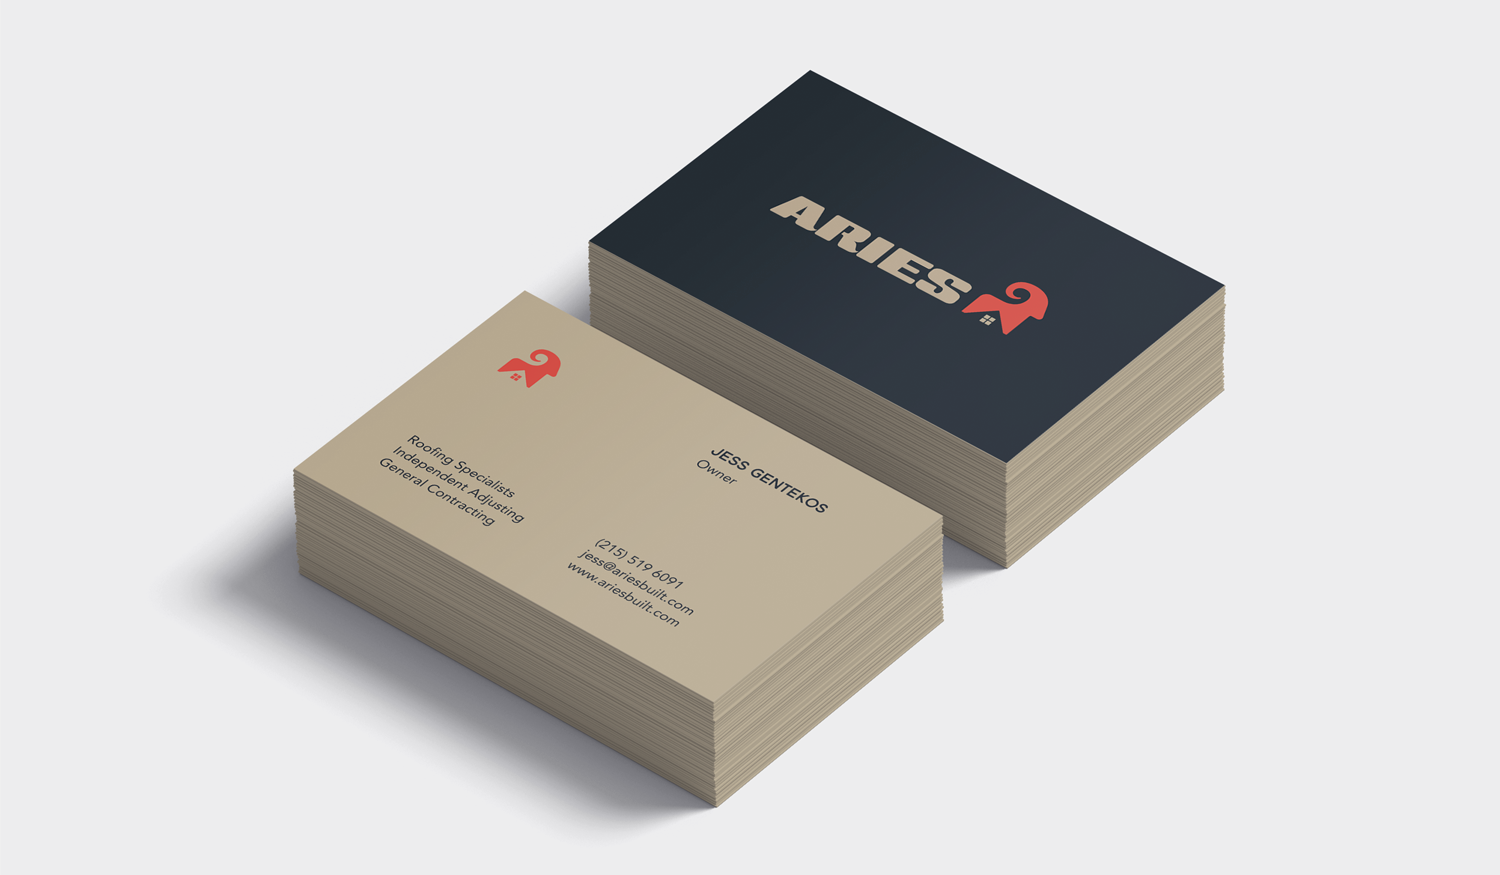 Aries visual identity business card design